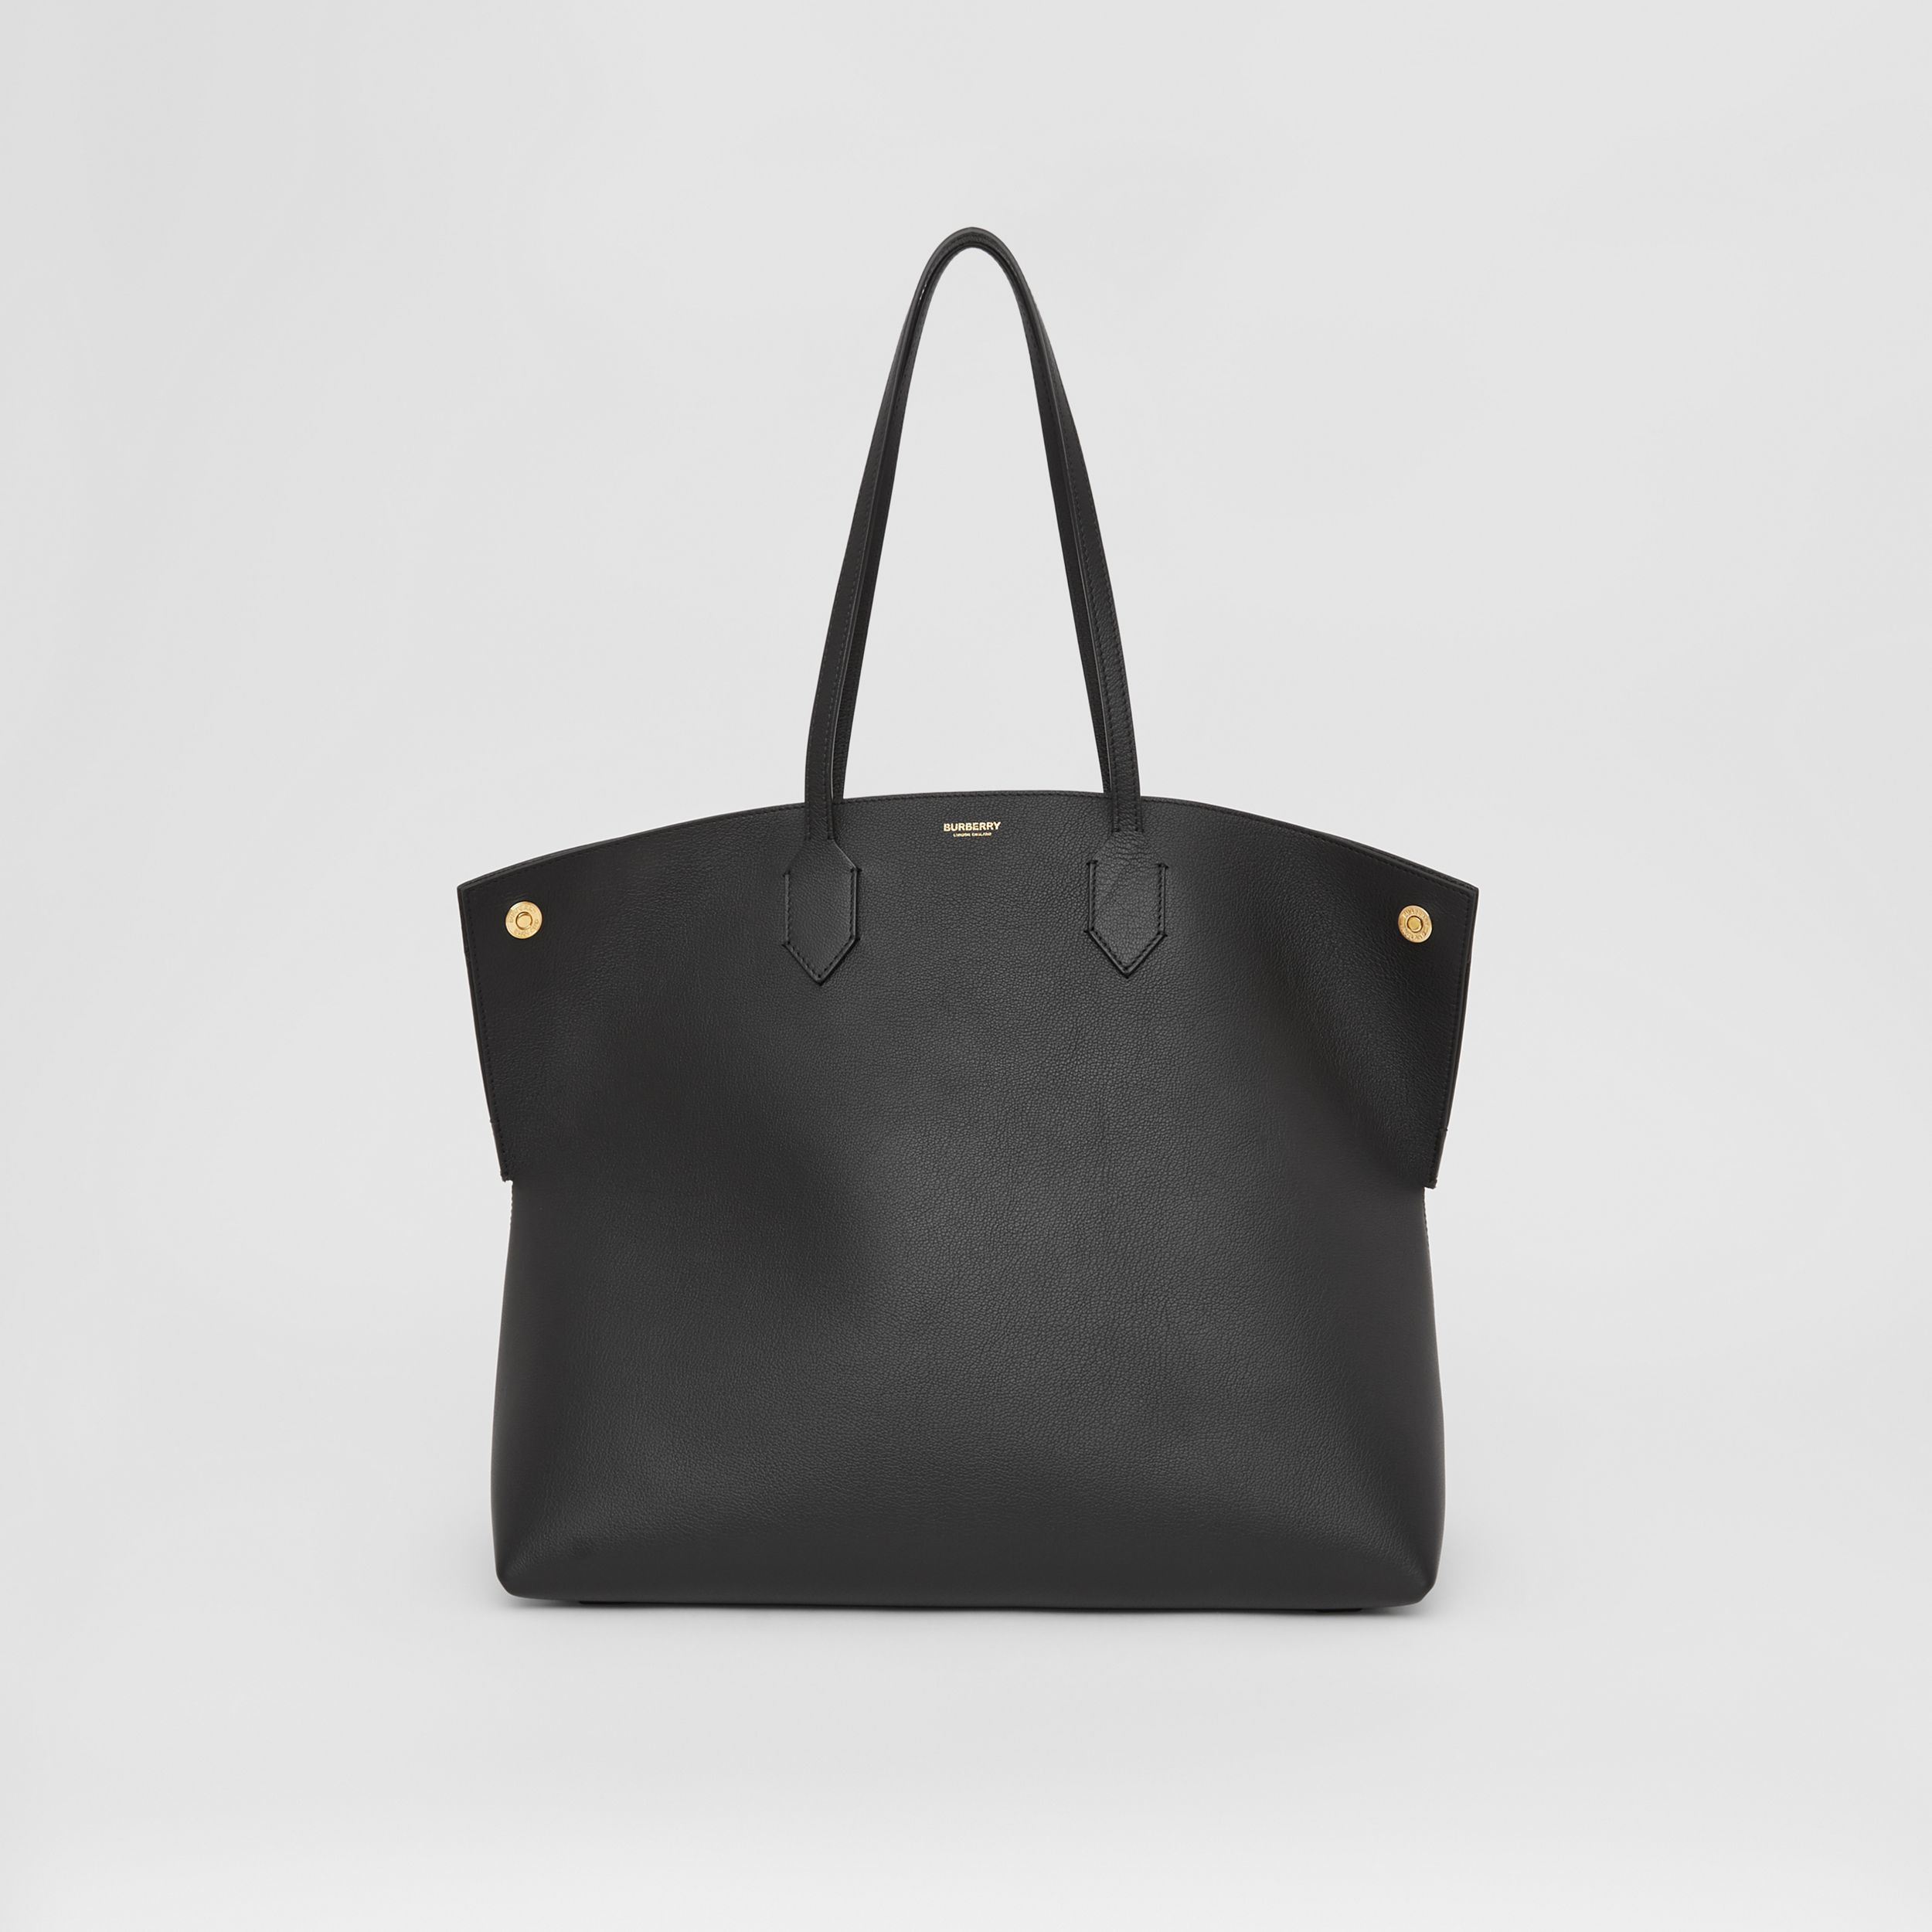 Large Grainy Leather Society Tote in Black - Women | Burberry Hong Kong S.A.R. - 1